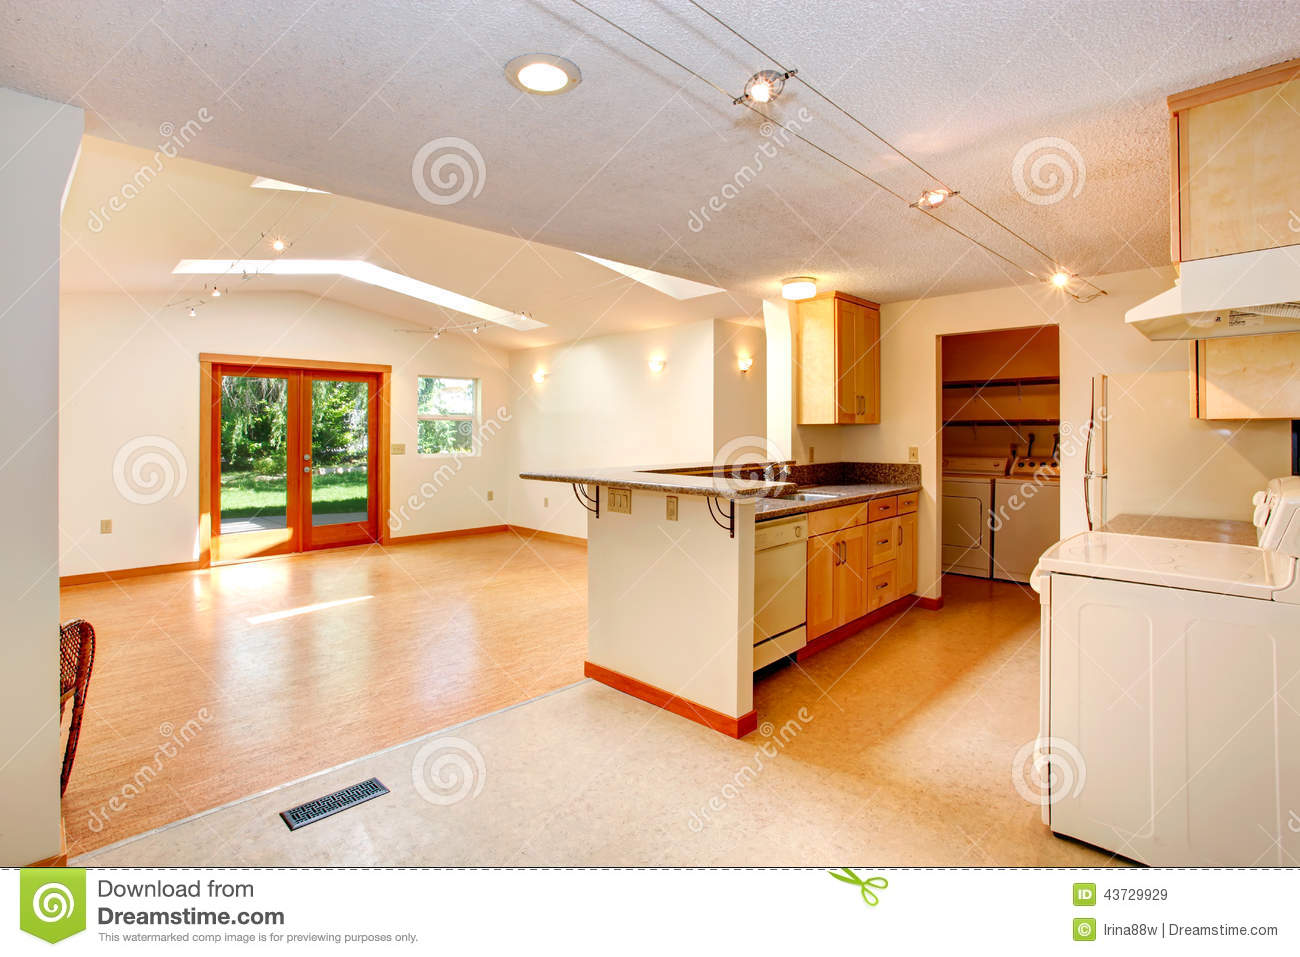 ceiling empty house interior kitchen living open plan room - Living Room Floor Plans